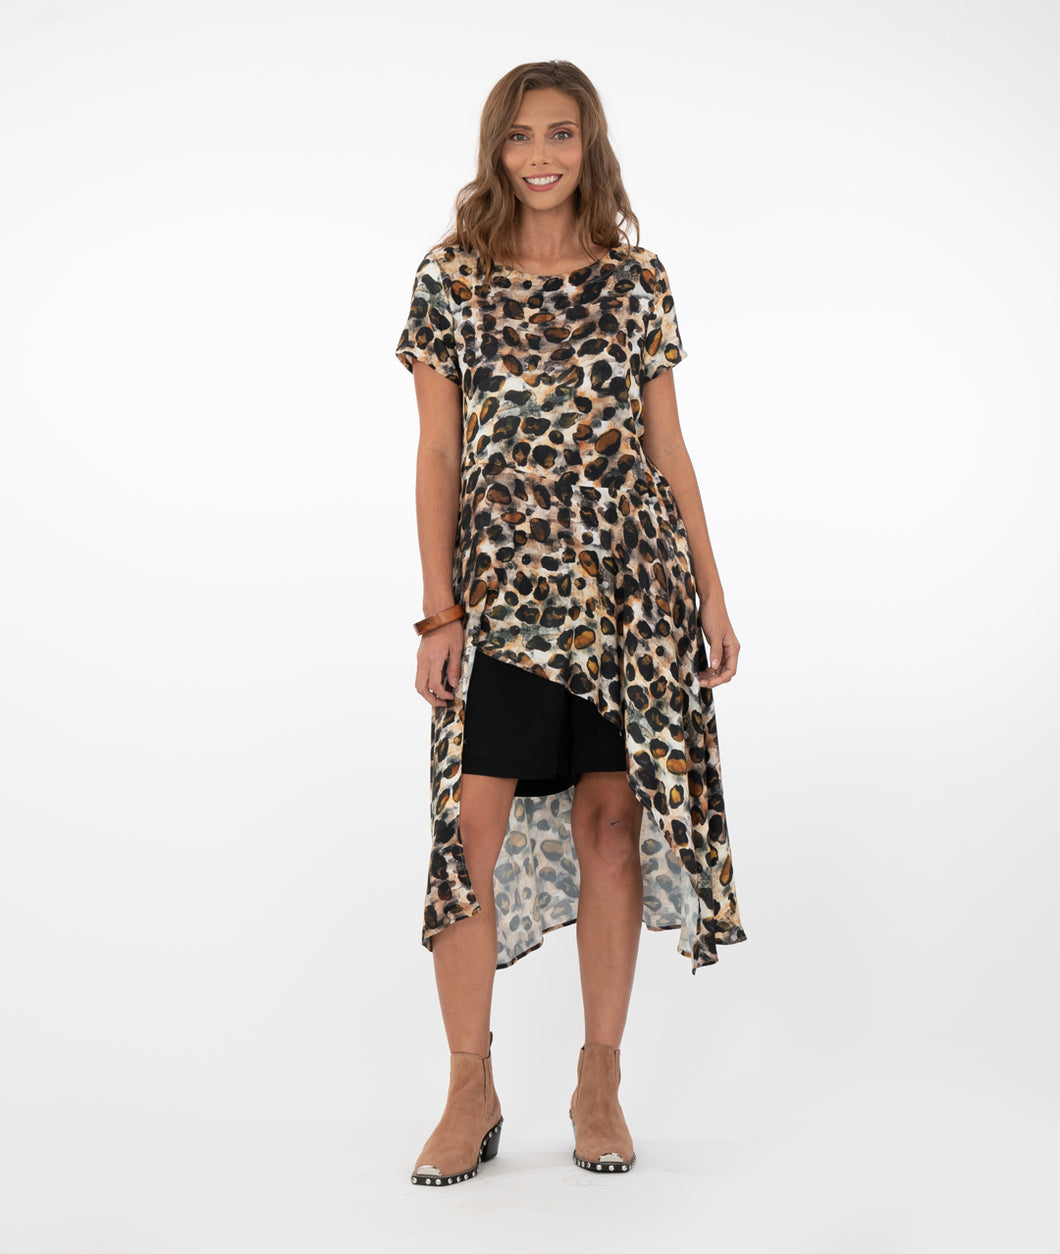 model in an animal print button up with black shorts in front of a white background